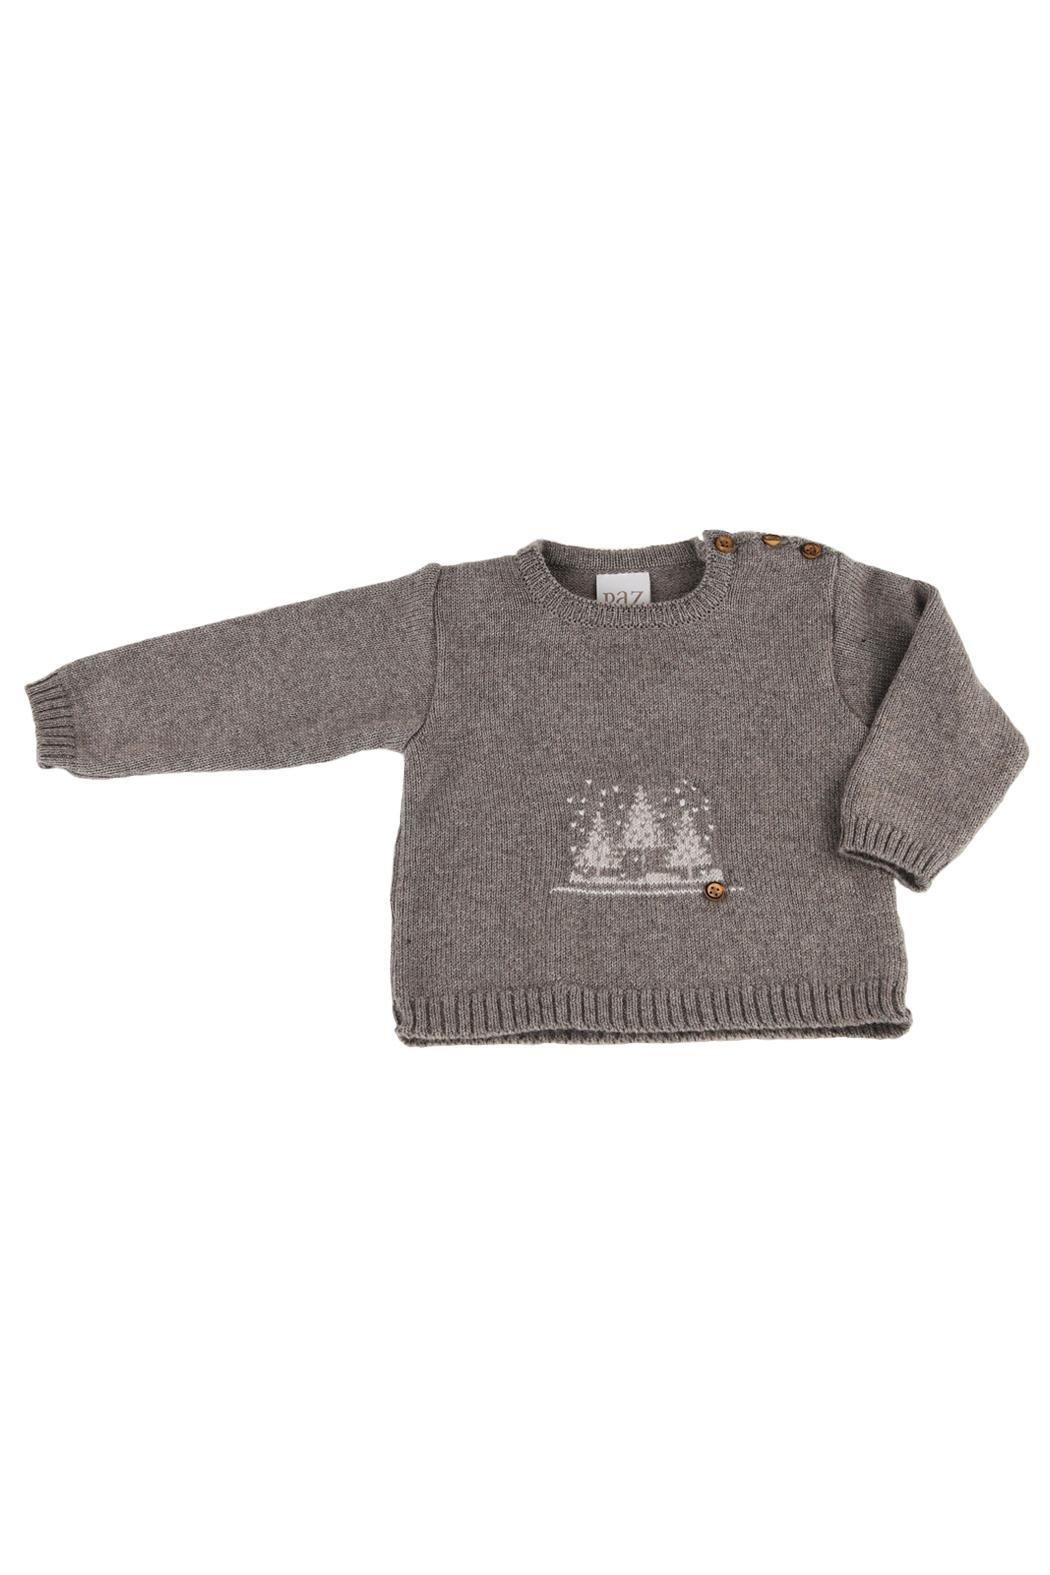 Paz Rodriguez Grey Knitted Pullover. - Main Image